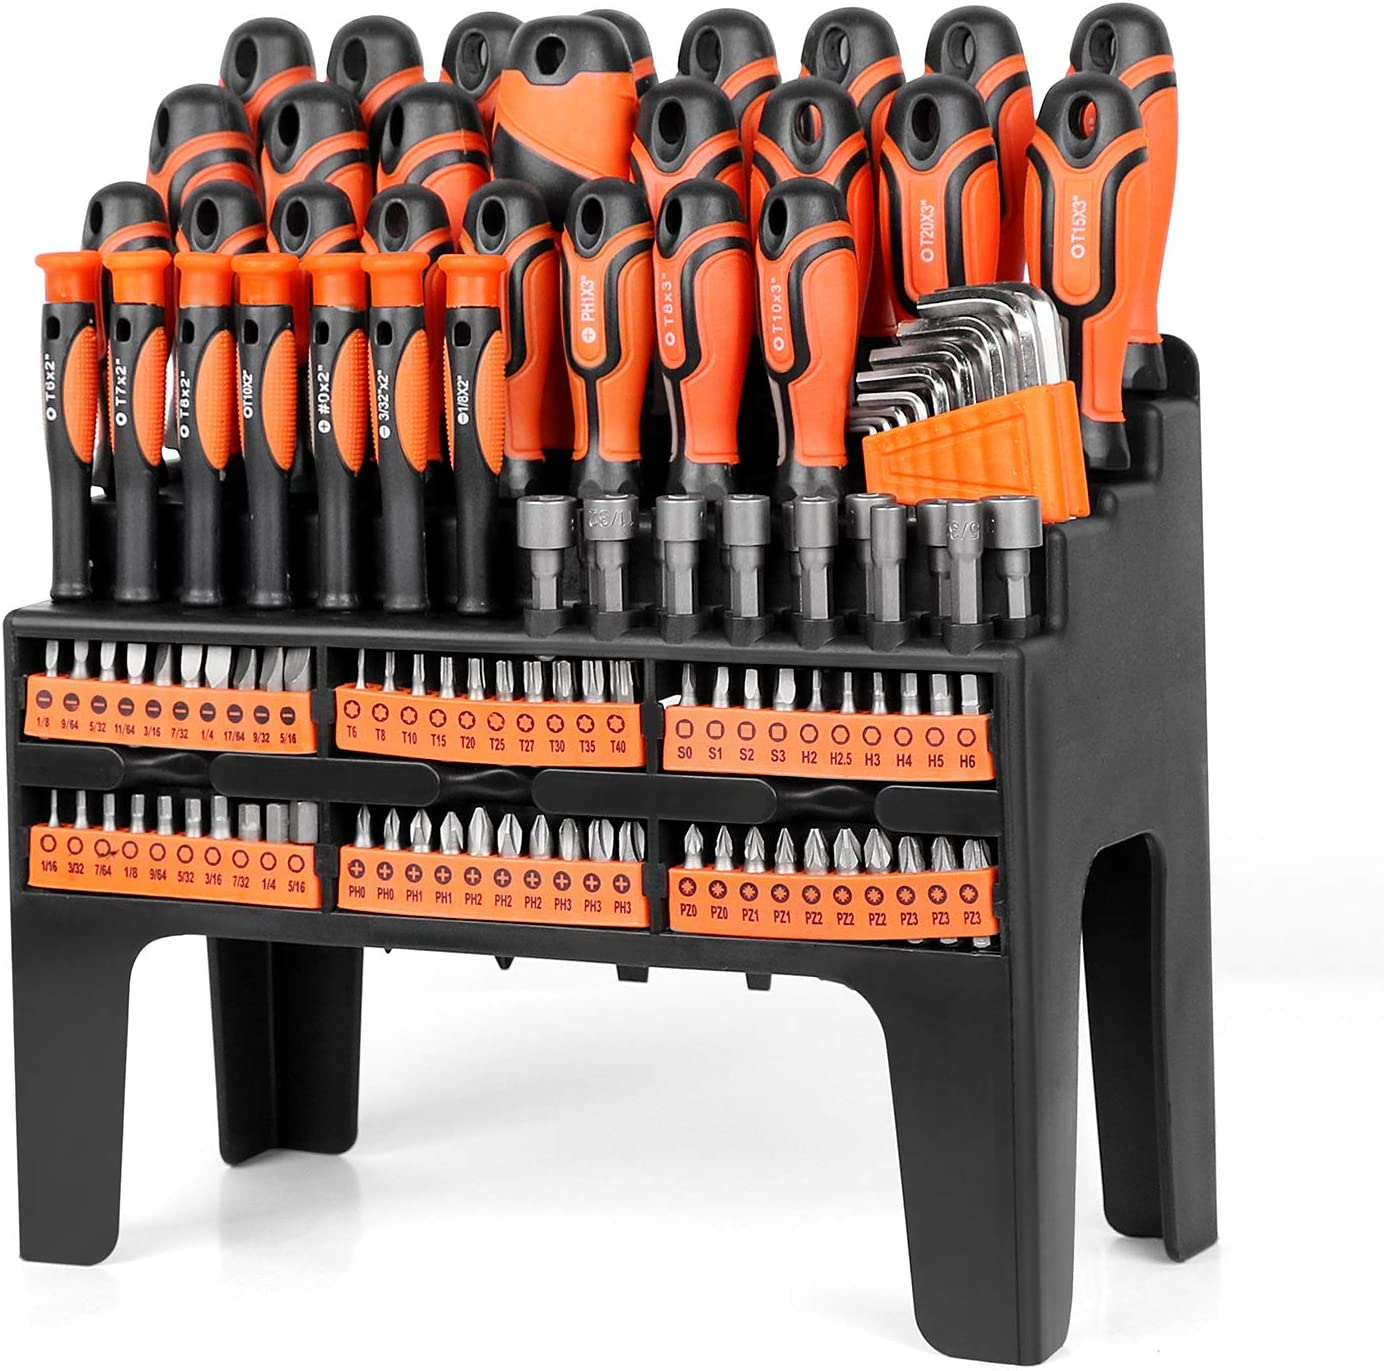 SEDY 122-Piece Magnetic Screwdriver Set with Plastic Racking, Best Tools for Men Tools Gift, Drive Magnetic Bit Holding Screwdriver Handle & Hex Key, for Home Repair, Improvement